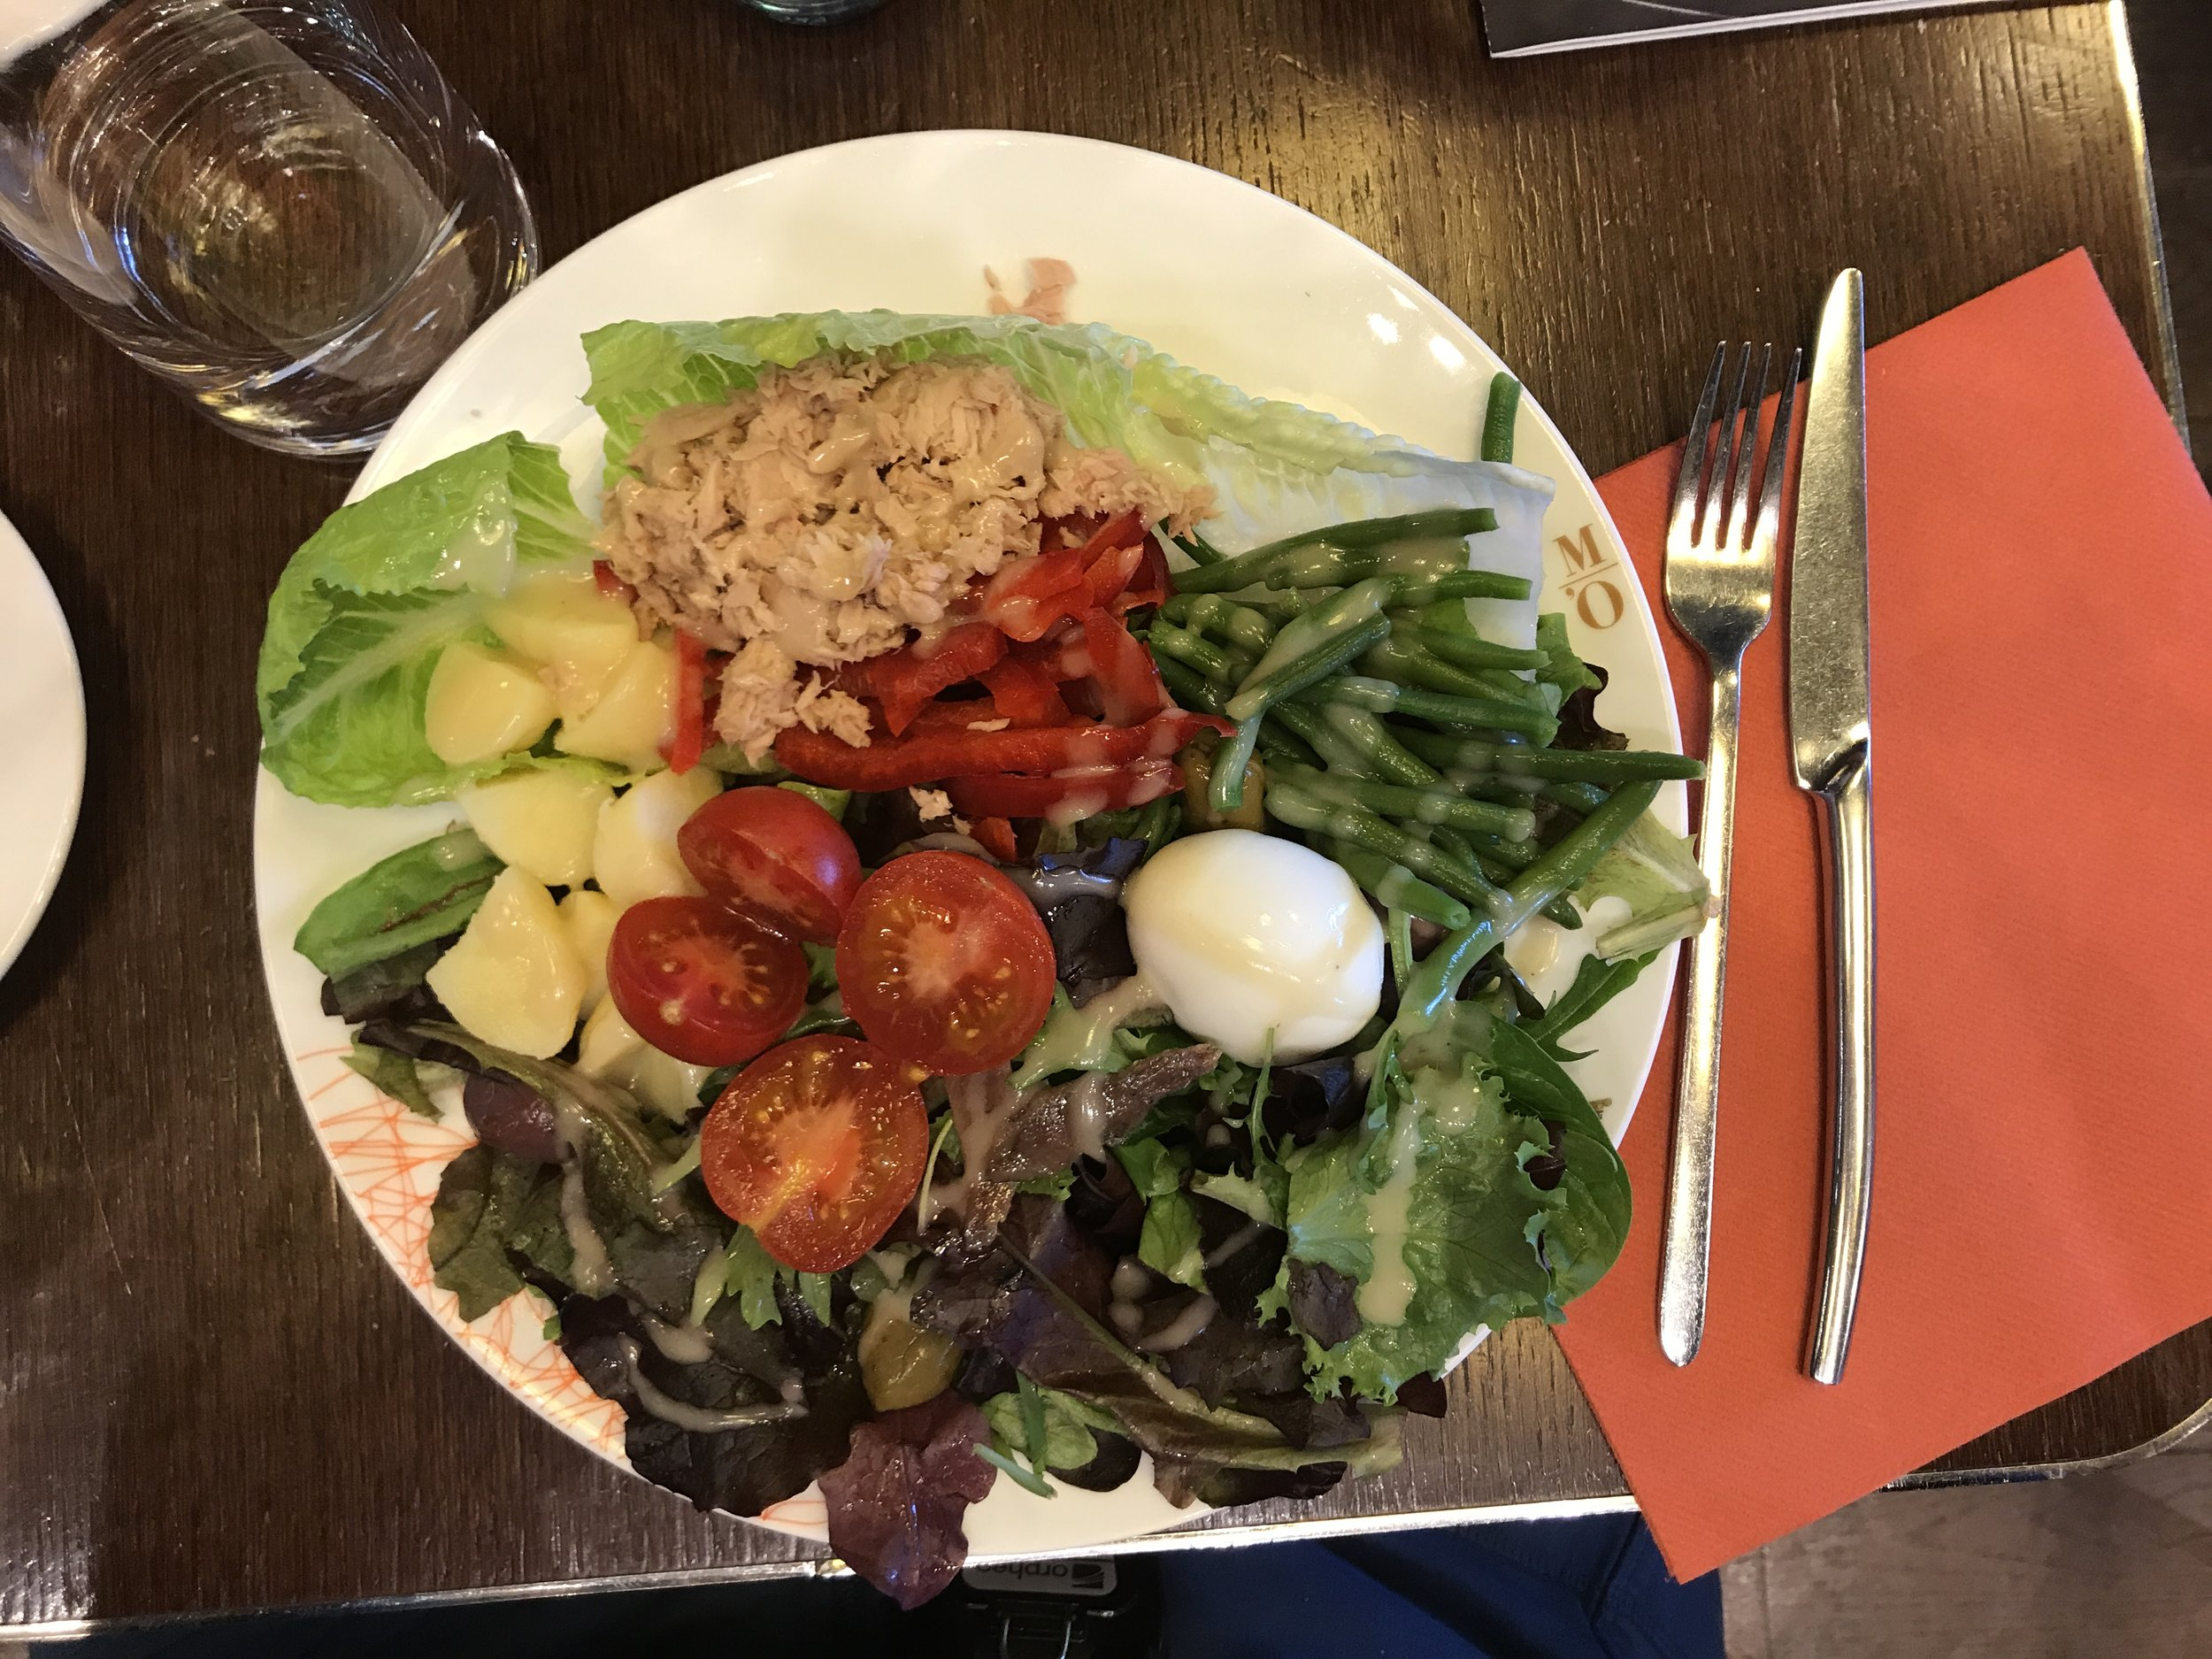 At the cafe at Musee D'Orsay, we overheard a couple have a room-silencing blow-out, then empathized over this beauty of an authentic Salade a la Niçoise.